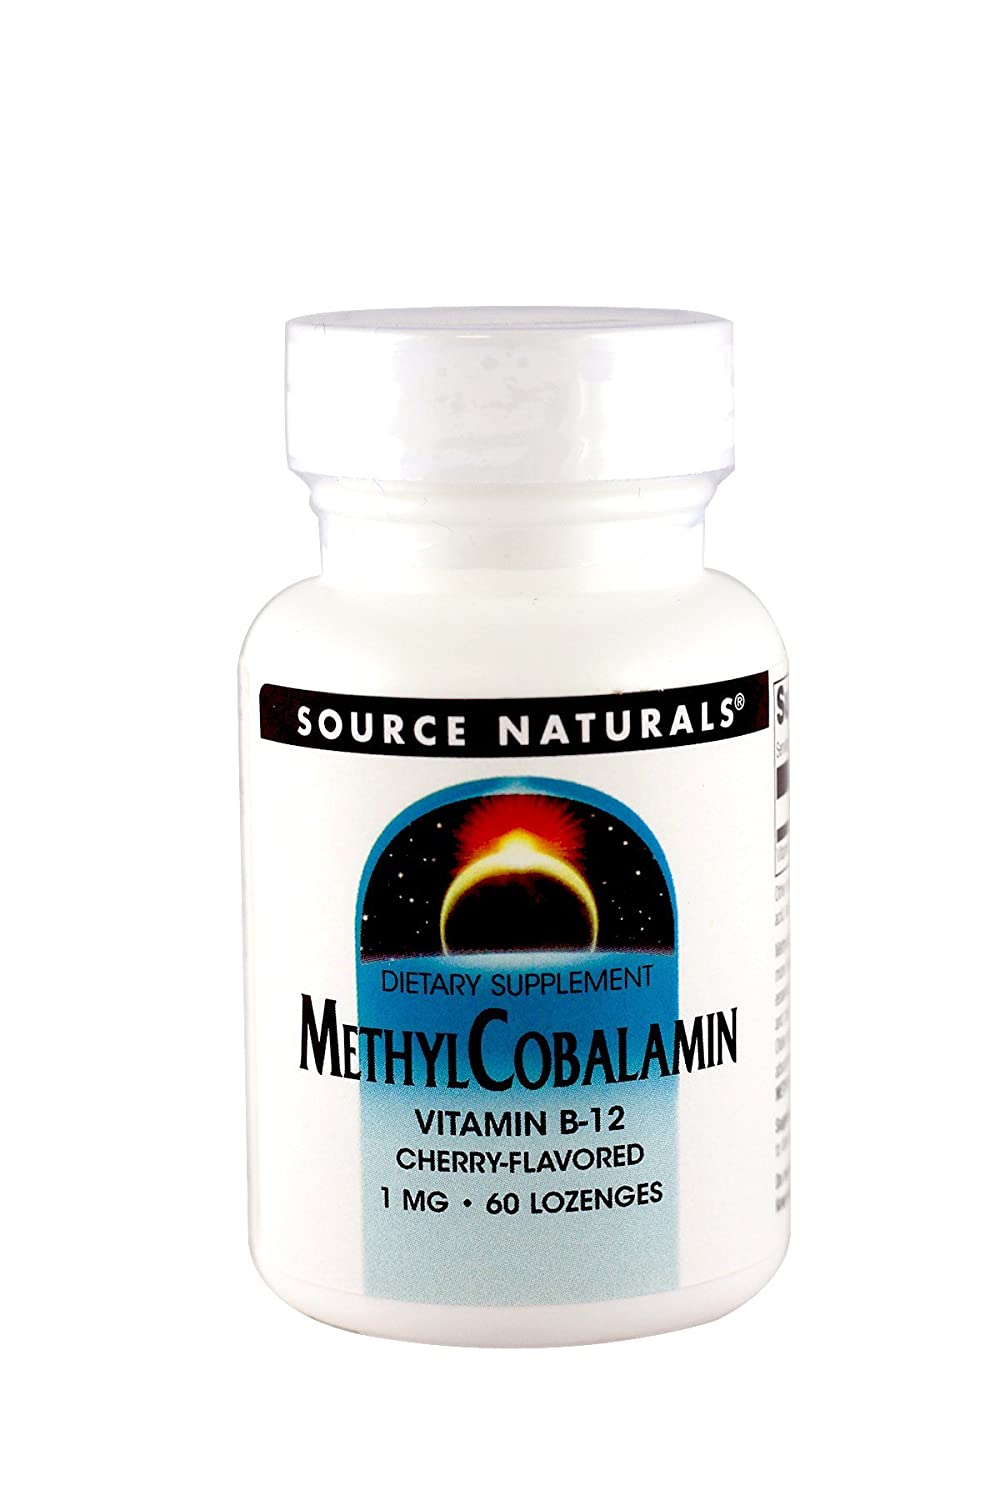 Source Naturals MethylCobalamin Vitamin B-12 1000mcg Cherry Flavored Sublingual – 60 Lozenges Pack of 2